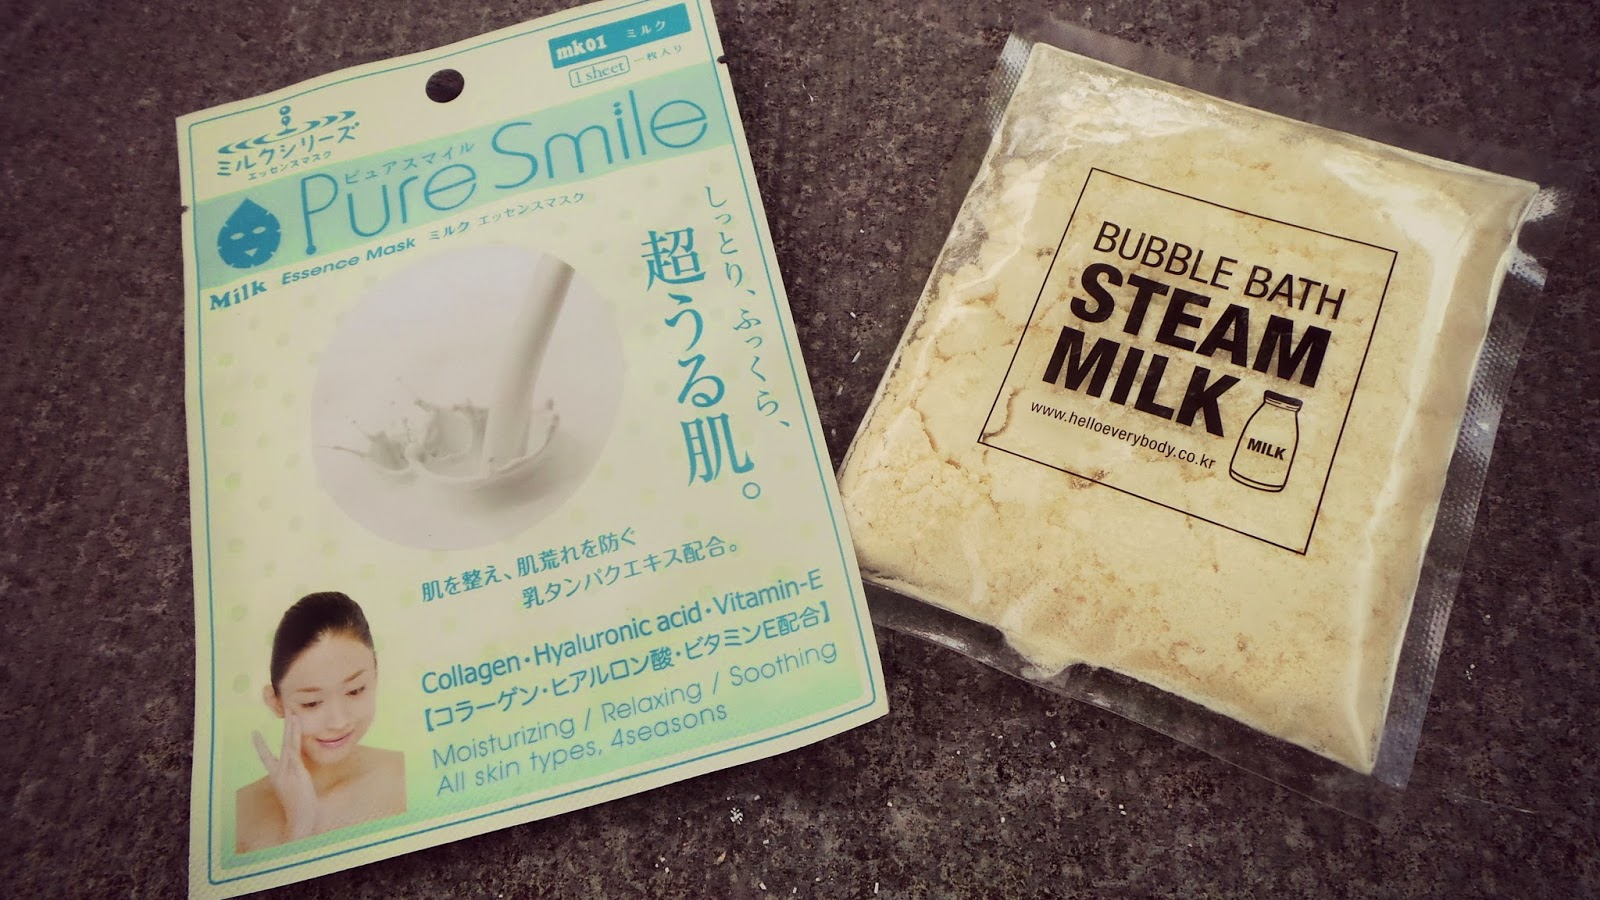 pure smile milk mask